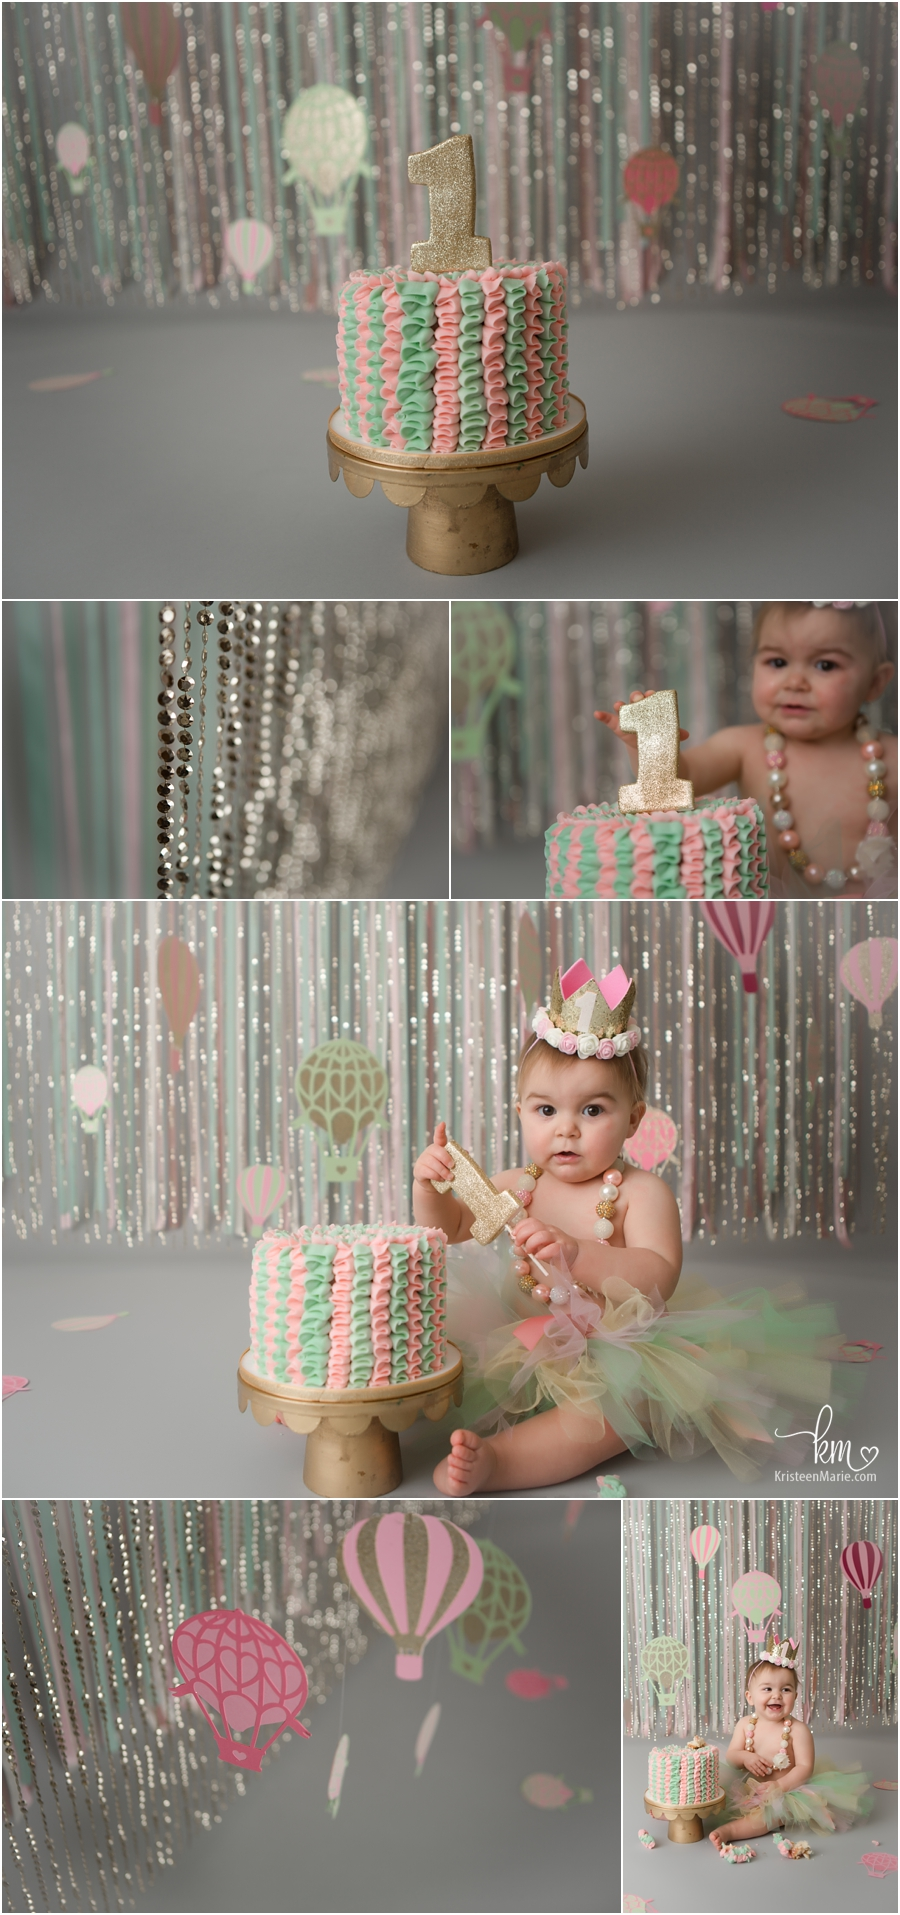 Pink, gold, and mint hot air balloon 1st birthday cake smash session - so cute!!